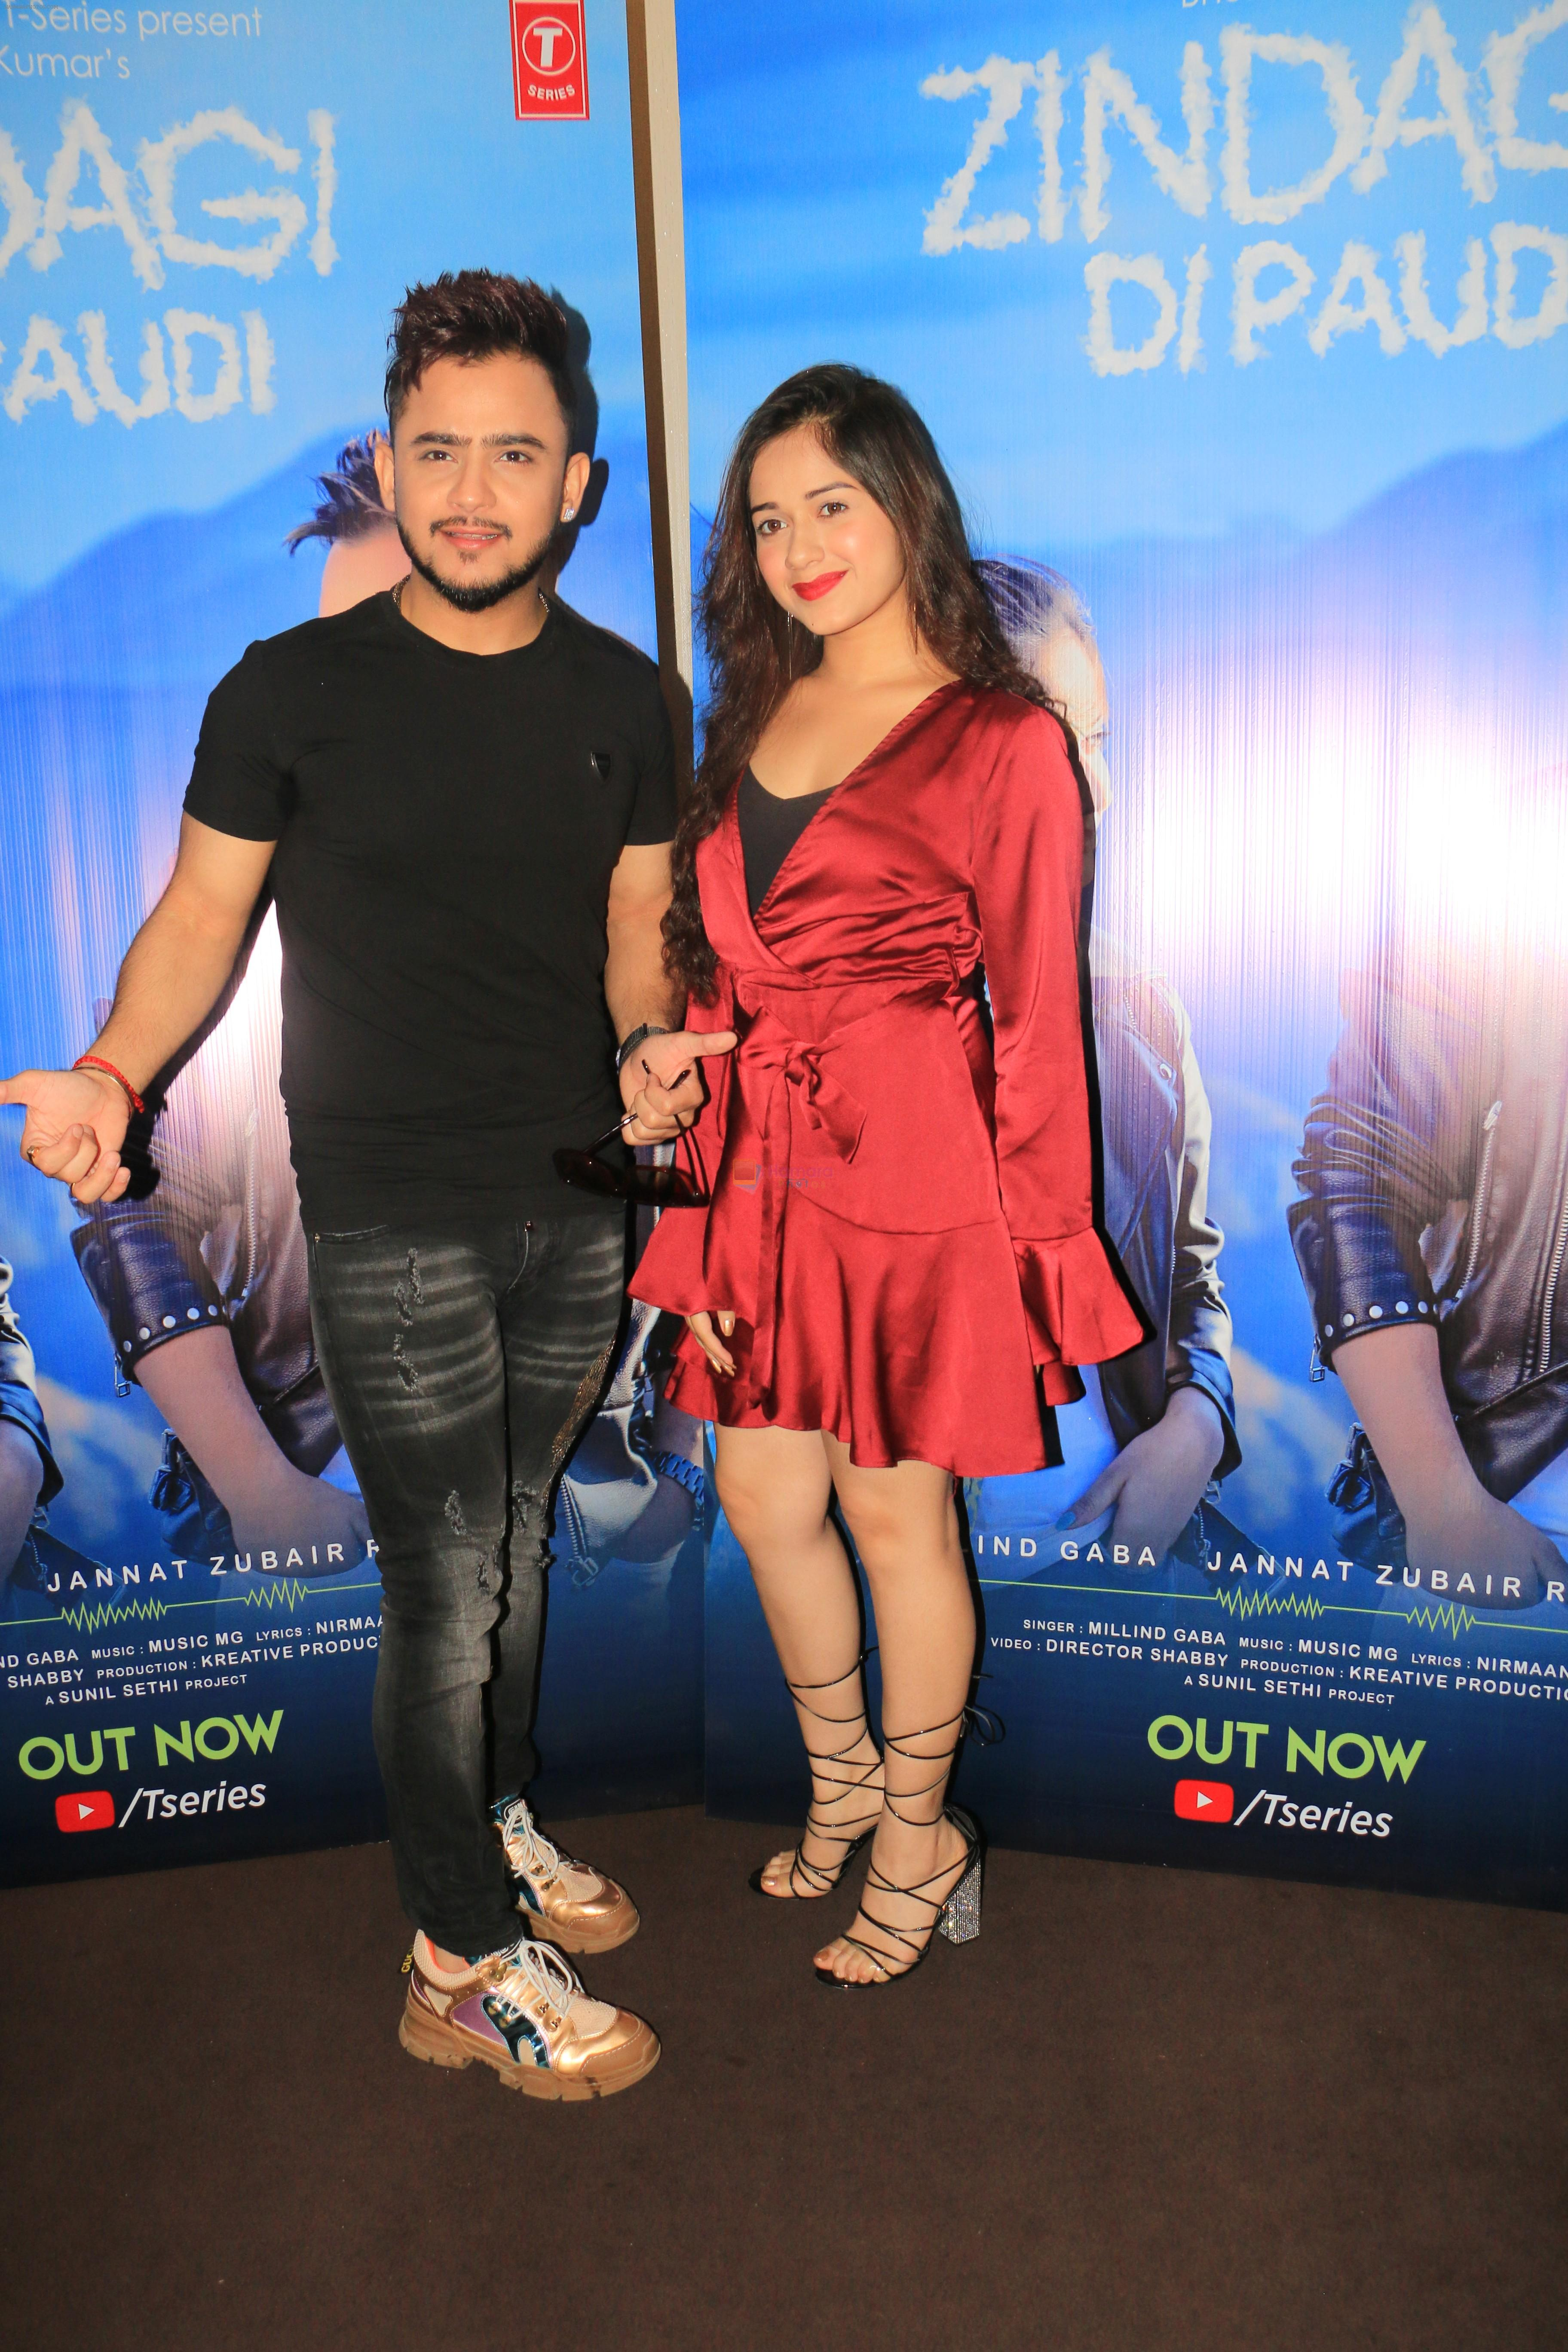 Millind Gaba, Jannat Zubair at Zindagi Di Paudi song launch at Hard Rock Cafe andheri on 6th June 2019